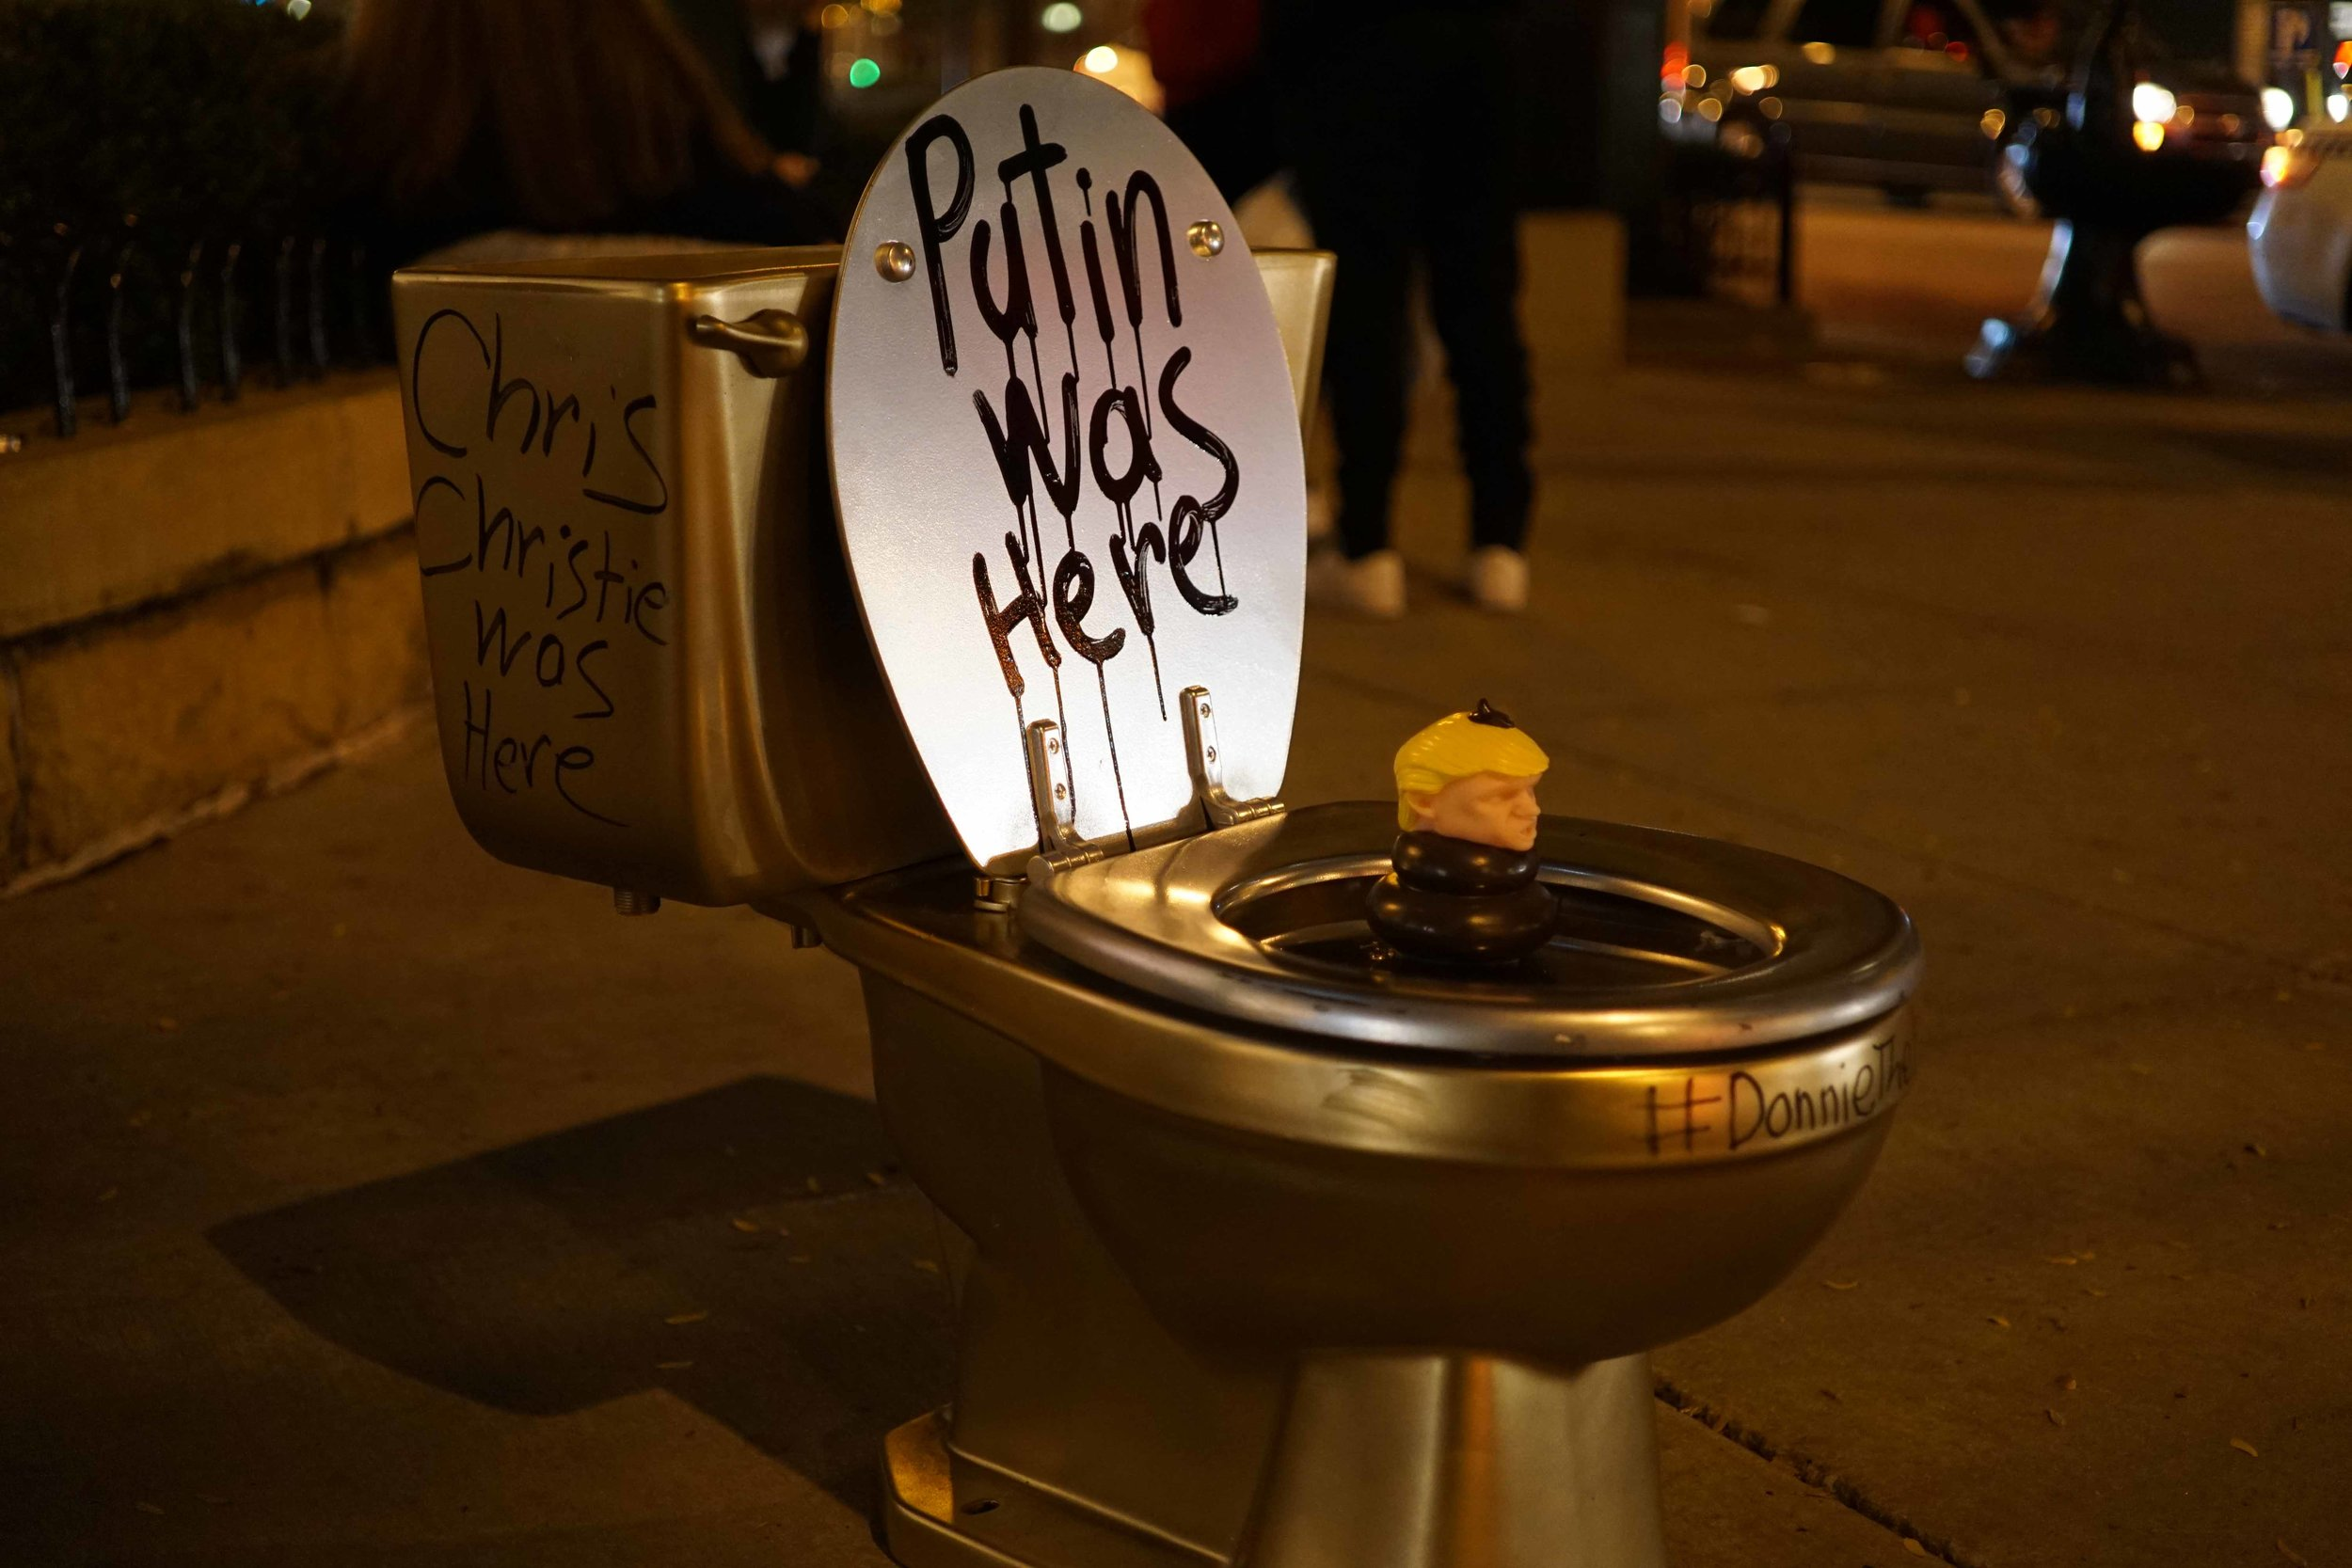 Donald Trump Donnie The Poo 2016 Birch Reincliff Golden Toilet Golden Elephant 2 street art illegal advertising political art 2.jpg